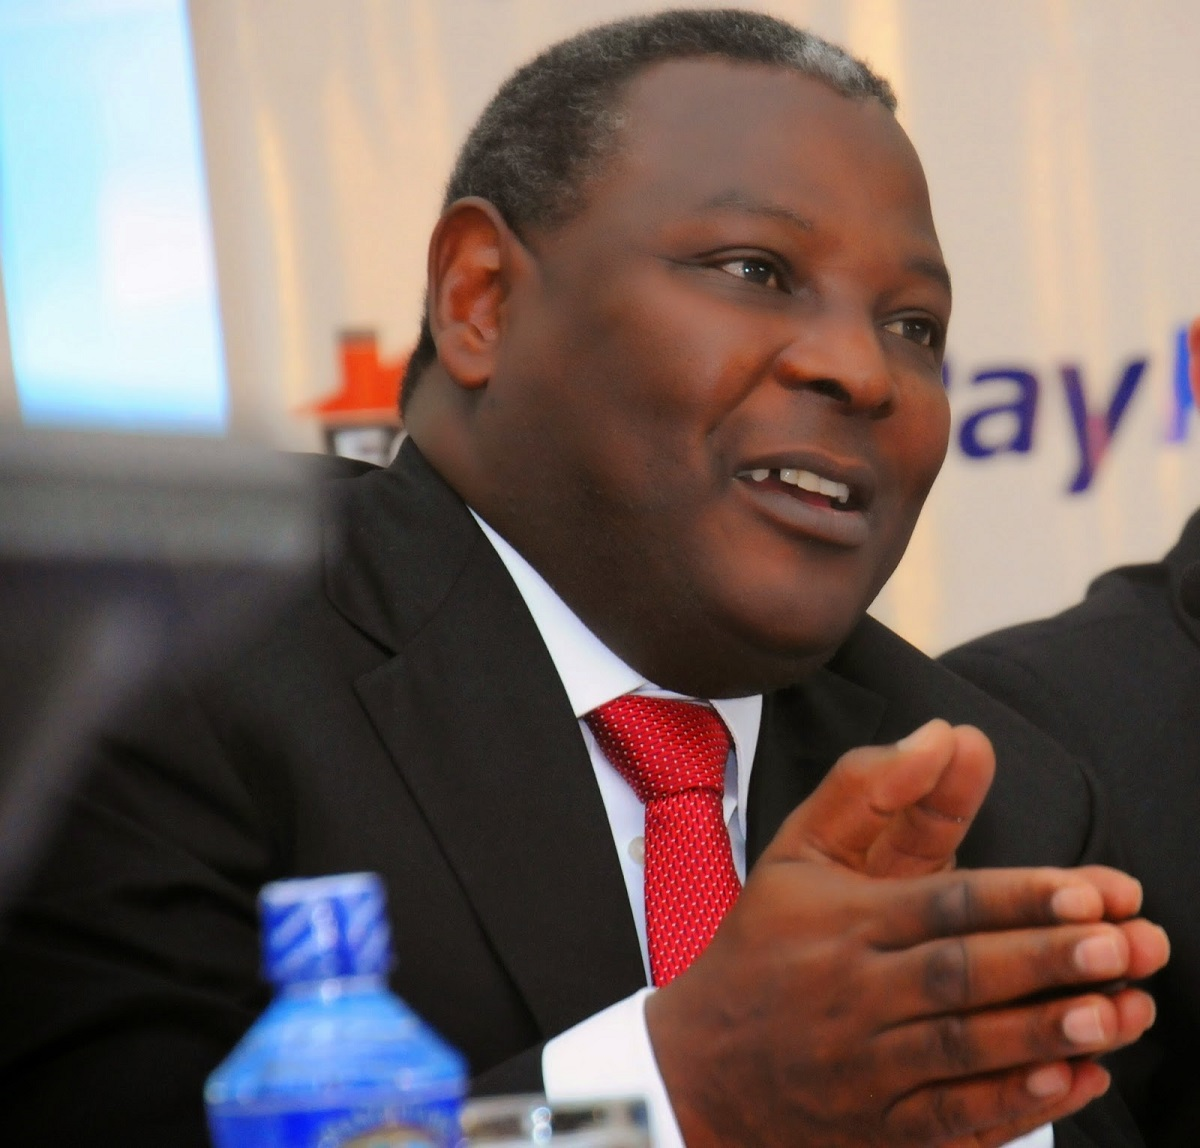 Dr james Mwangi Equity Bank www.businesstoday.co.ke